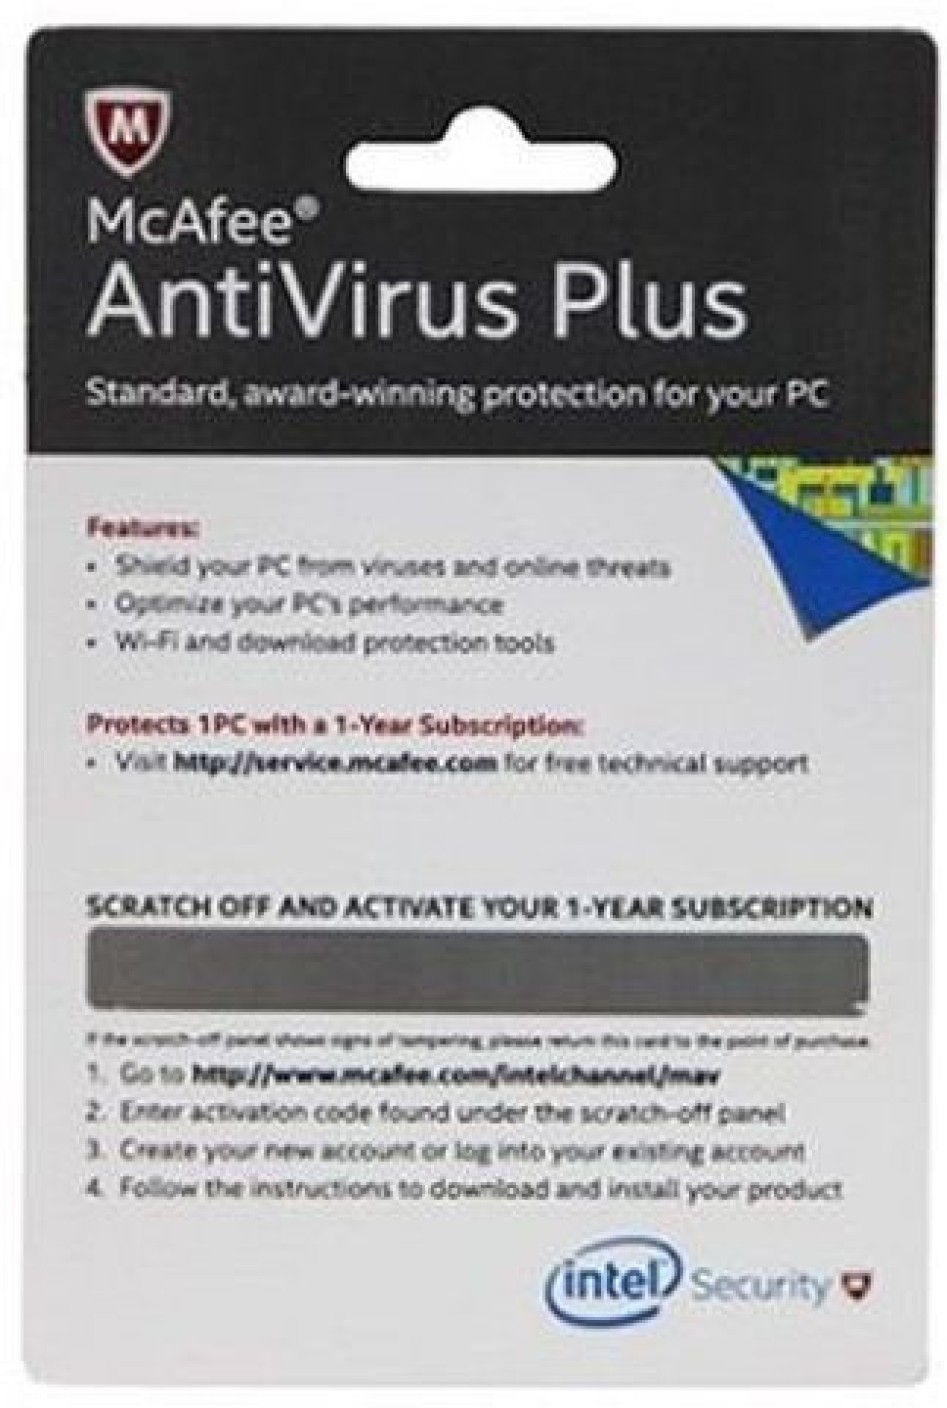 McAfee Antivirus Plus (10 Devices, Product Key Card, 1-Year Subscription) Protect All Your Devices (up to 10 devices) Comprehensive Mobile Security.